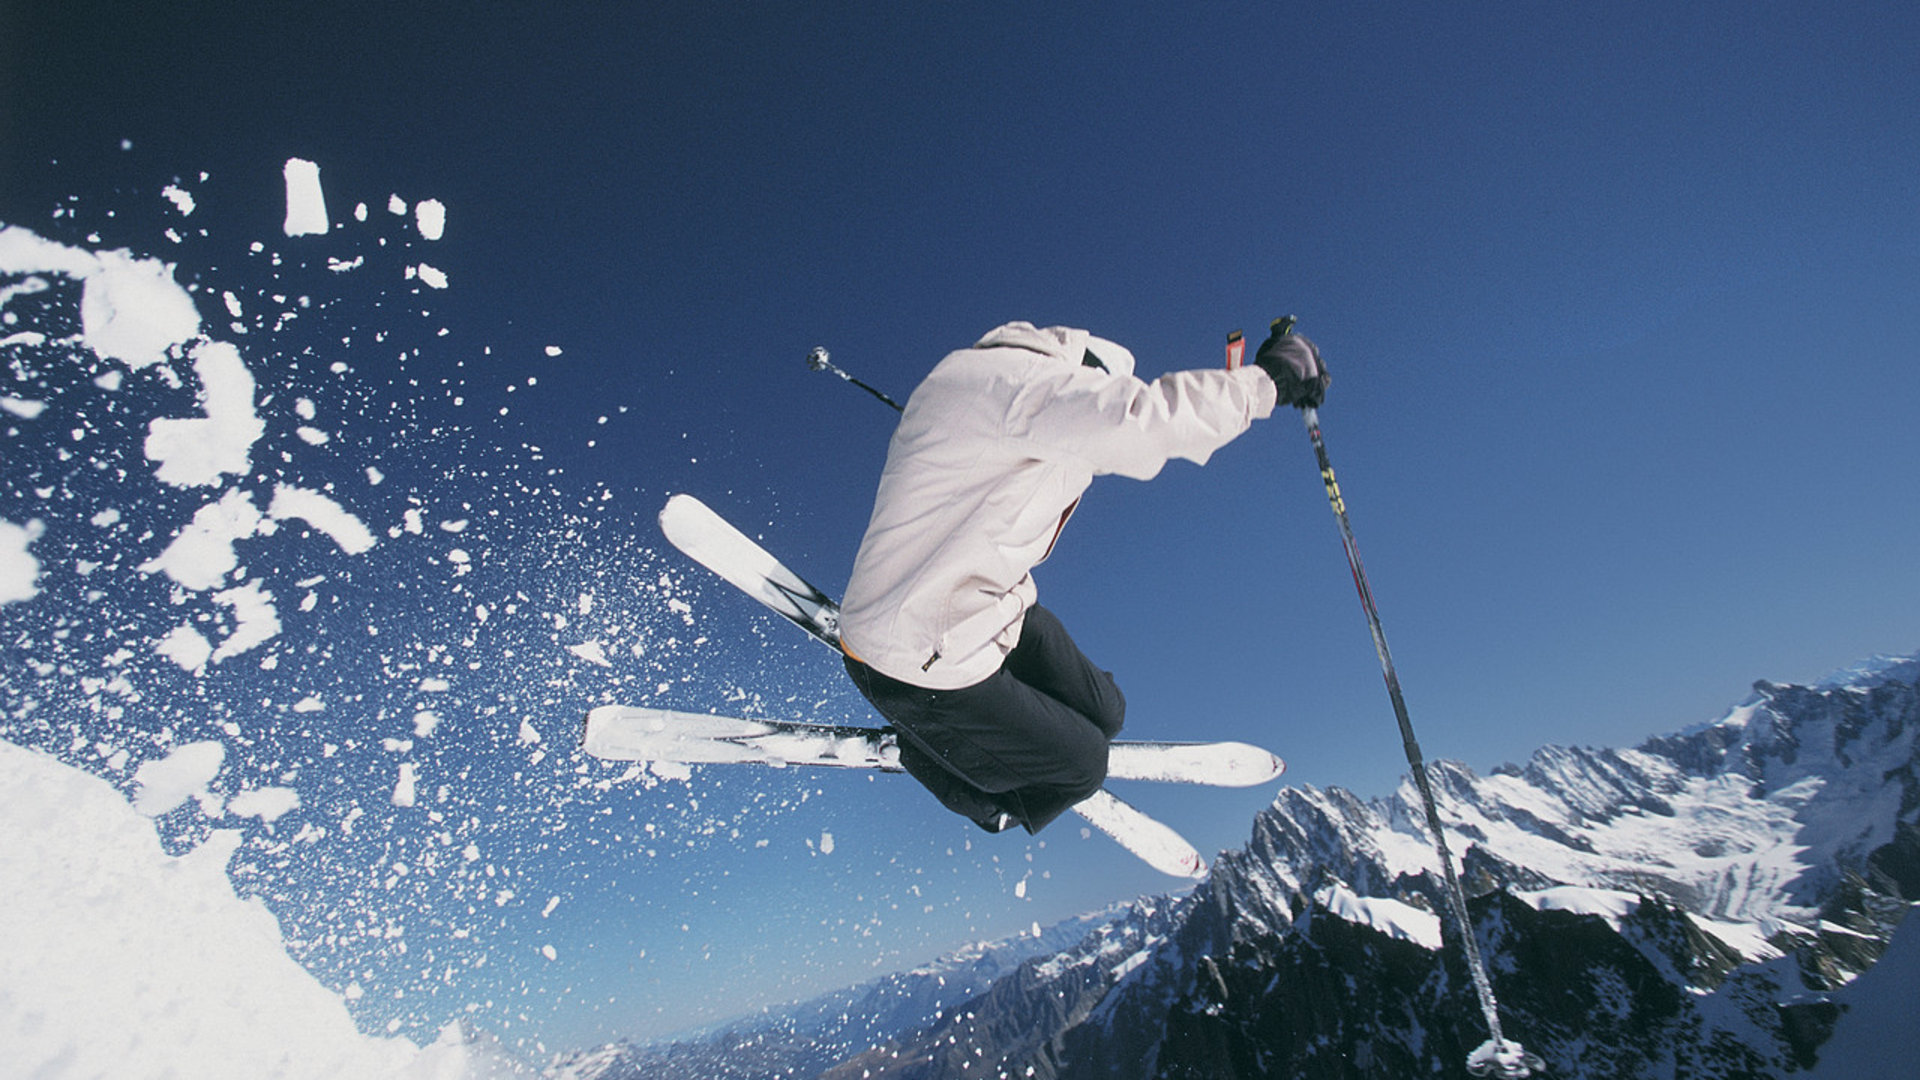 High resolution Skiing full hd 1920x1080 background ID:27265 for PC